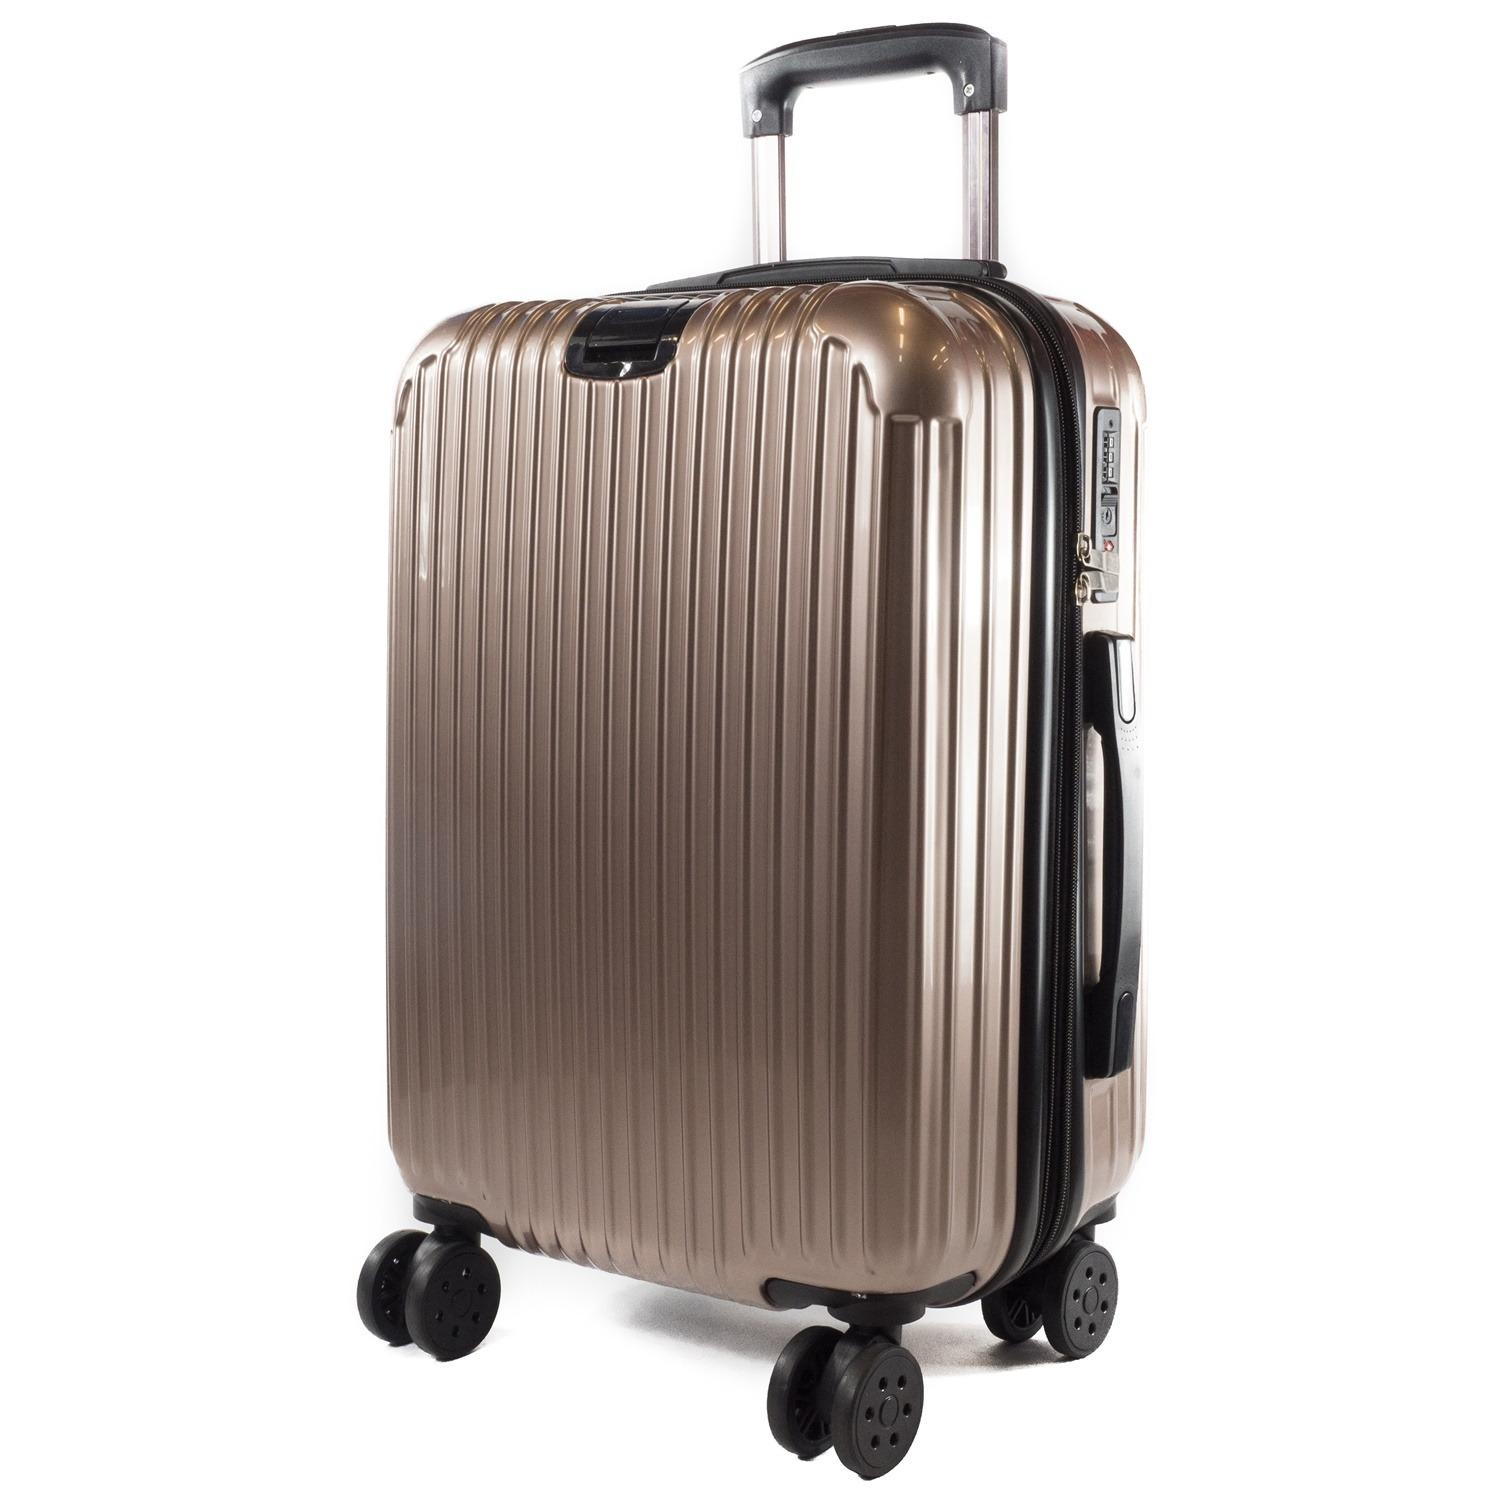 Sale 20 Inch Luxurious Expandable Luggage With Warranty Online Singapore